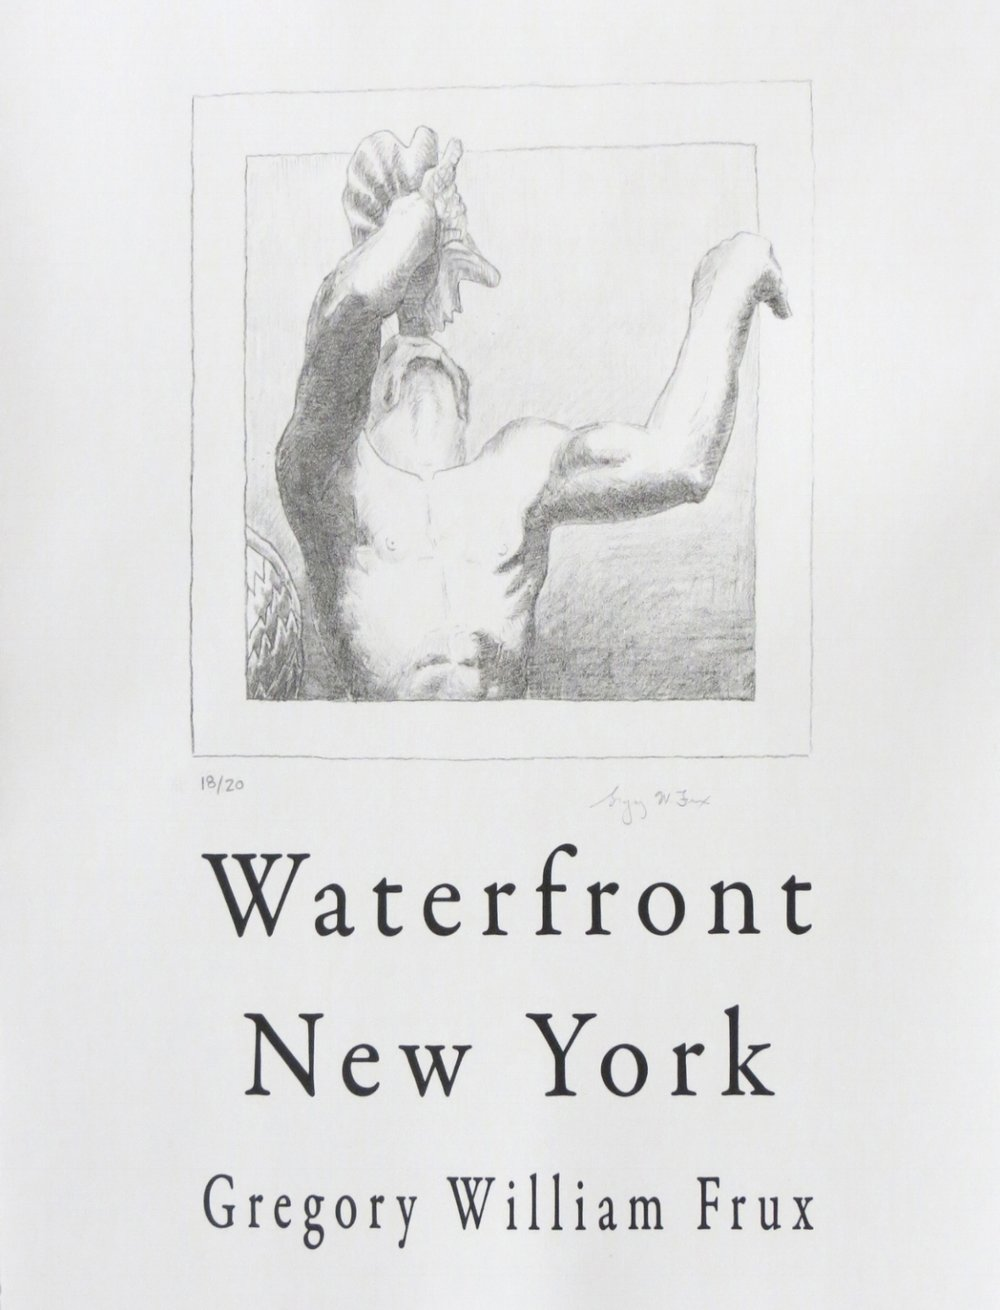 Waterfront Cover Page, lithograph and letter press